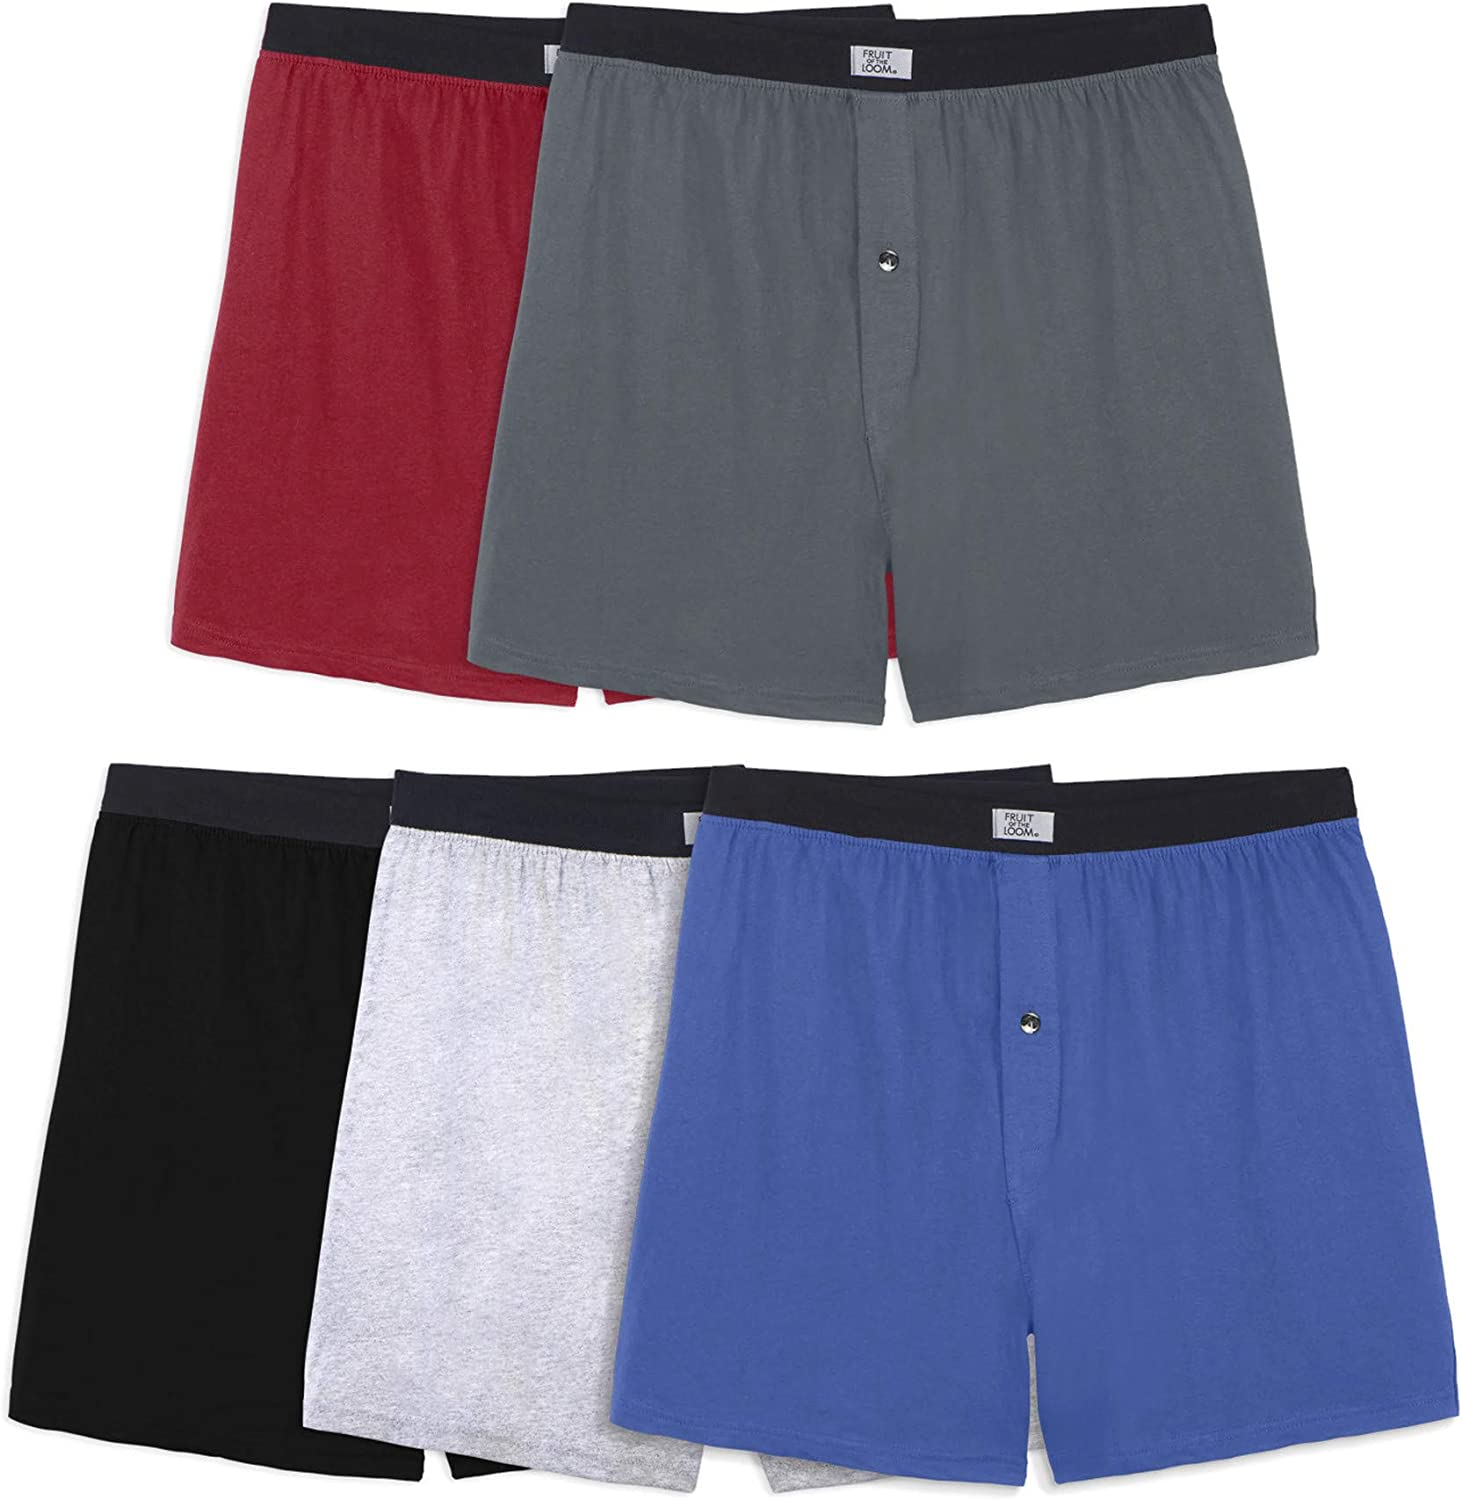 Fruit Of The Loom Mens Knit Boxers 5 Pack